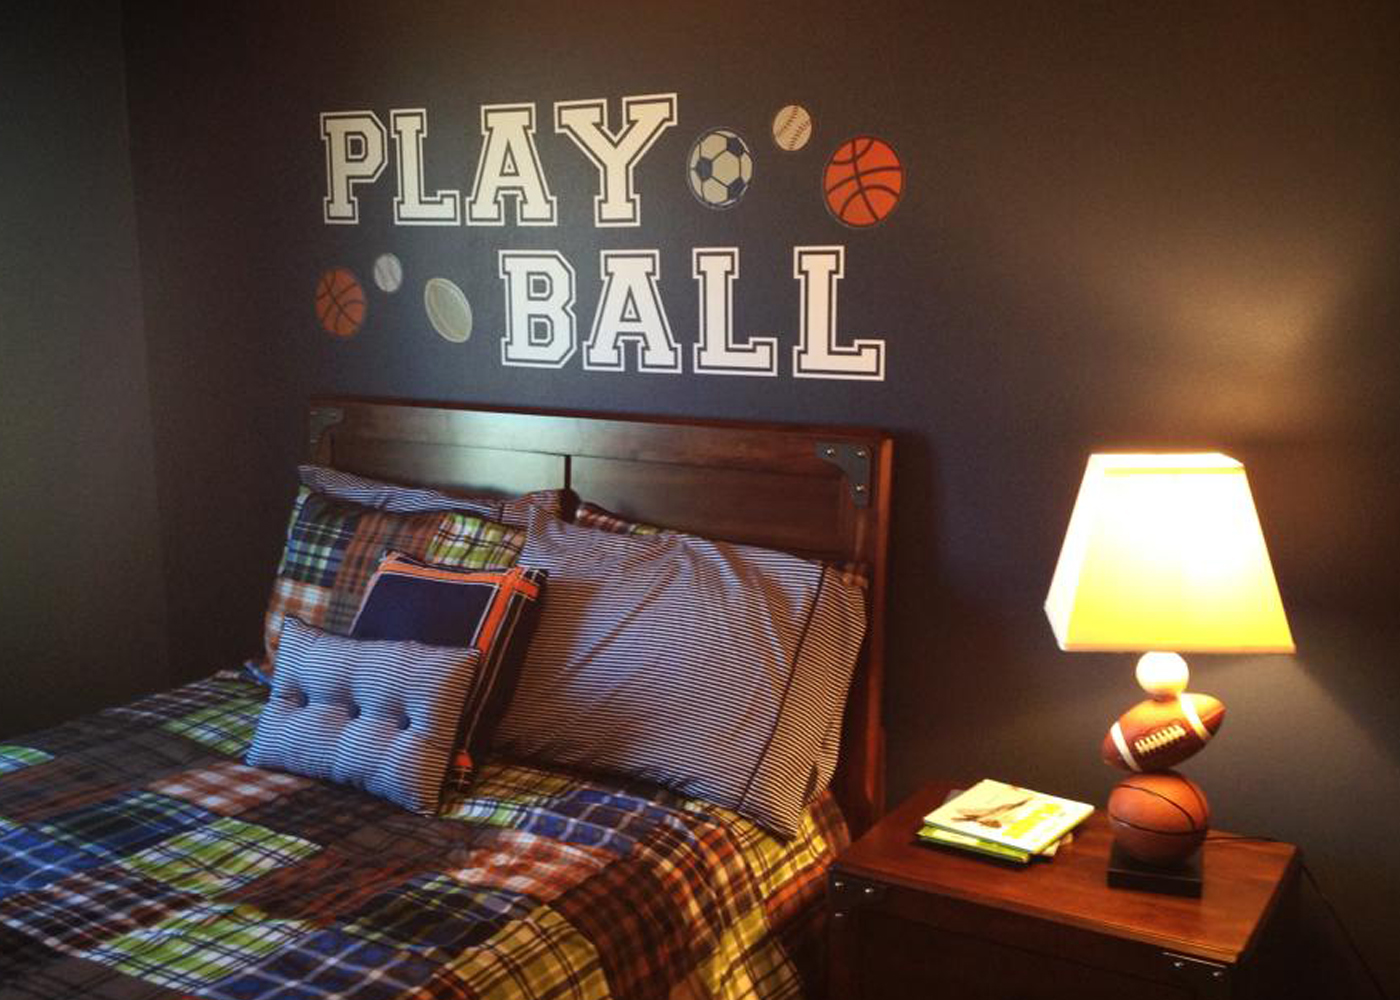 play-ball-boys-wall-decal-in-bedroom.jpg